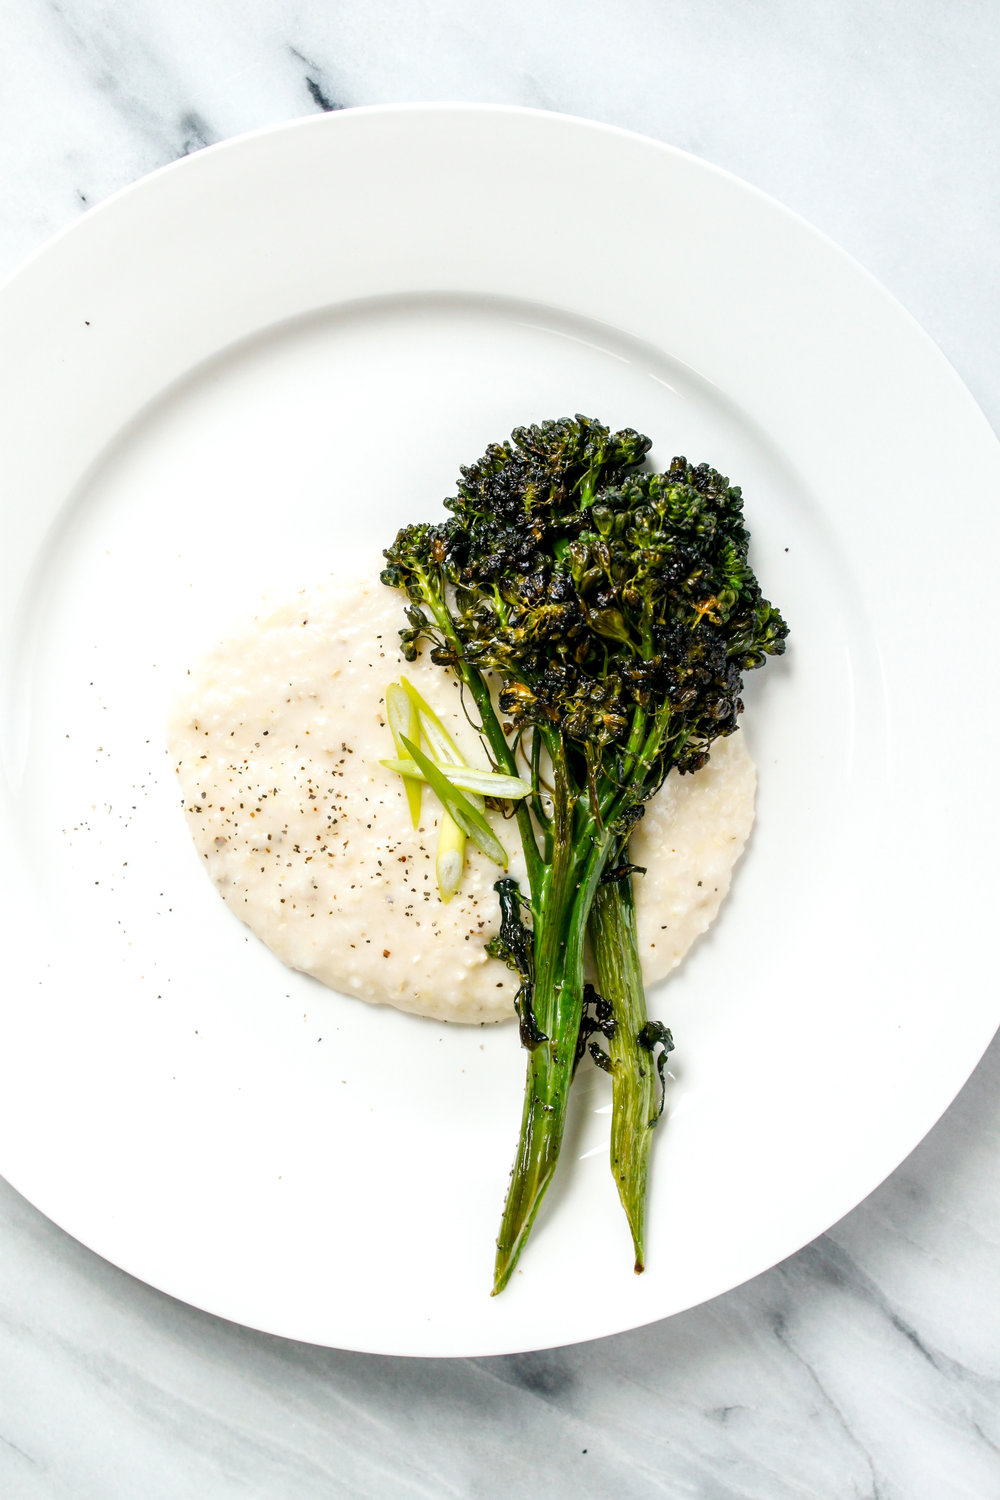 Cheddar Grits with Roasted Broccoli GLUTEN FREE